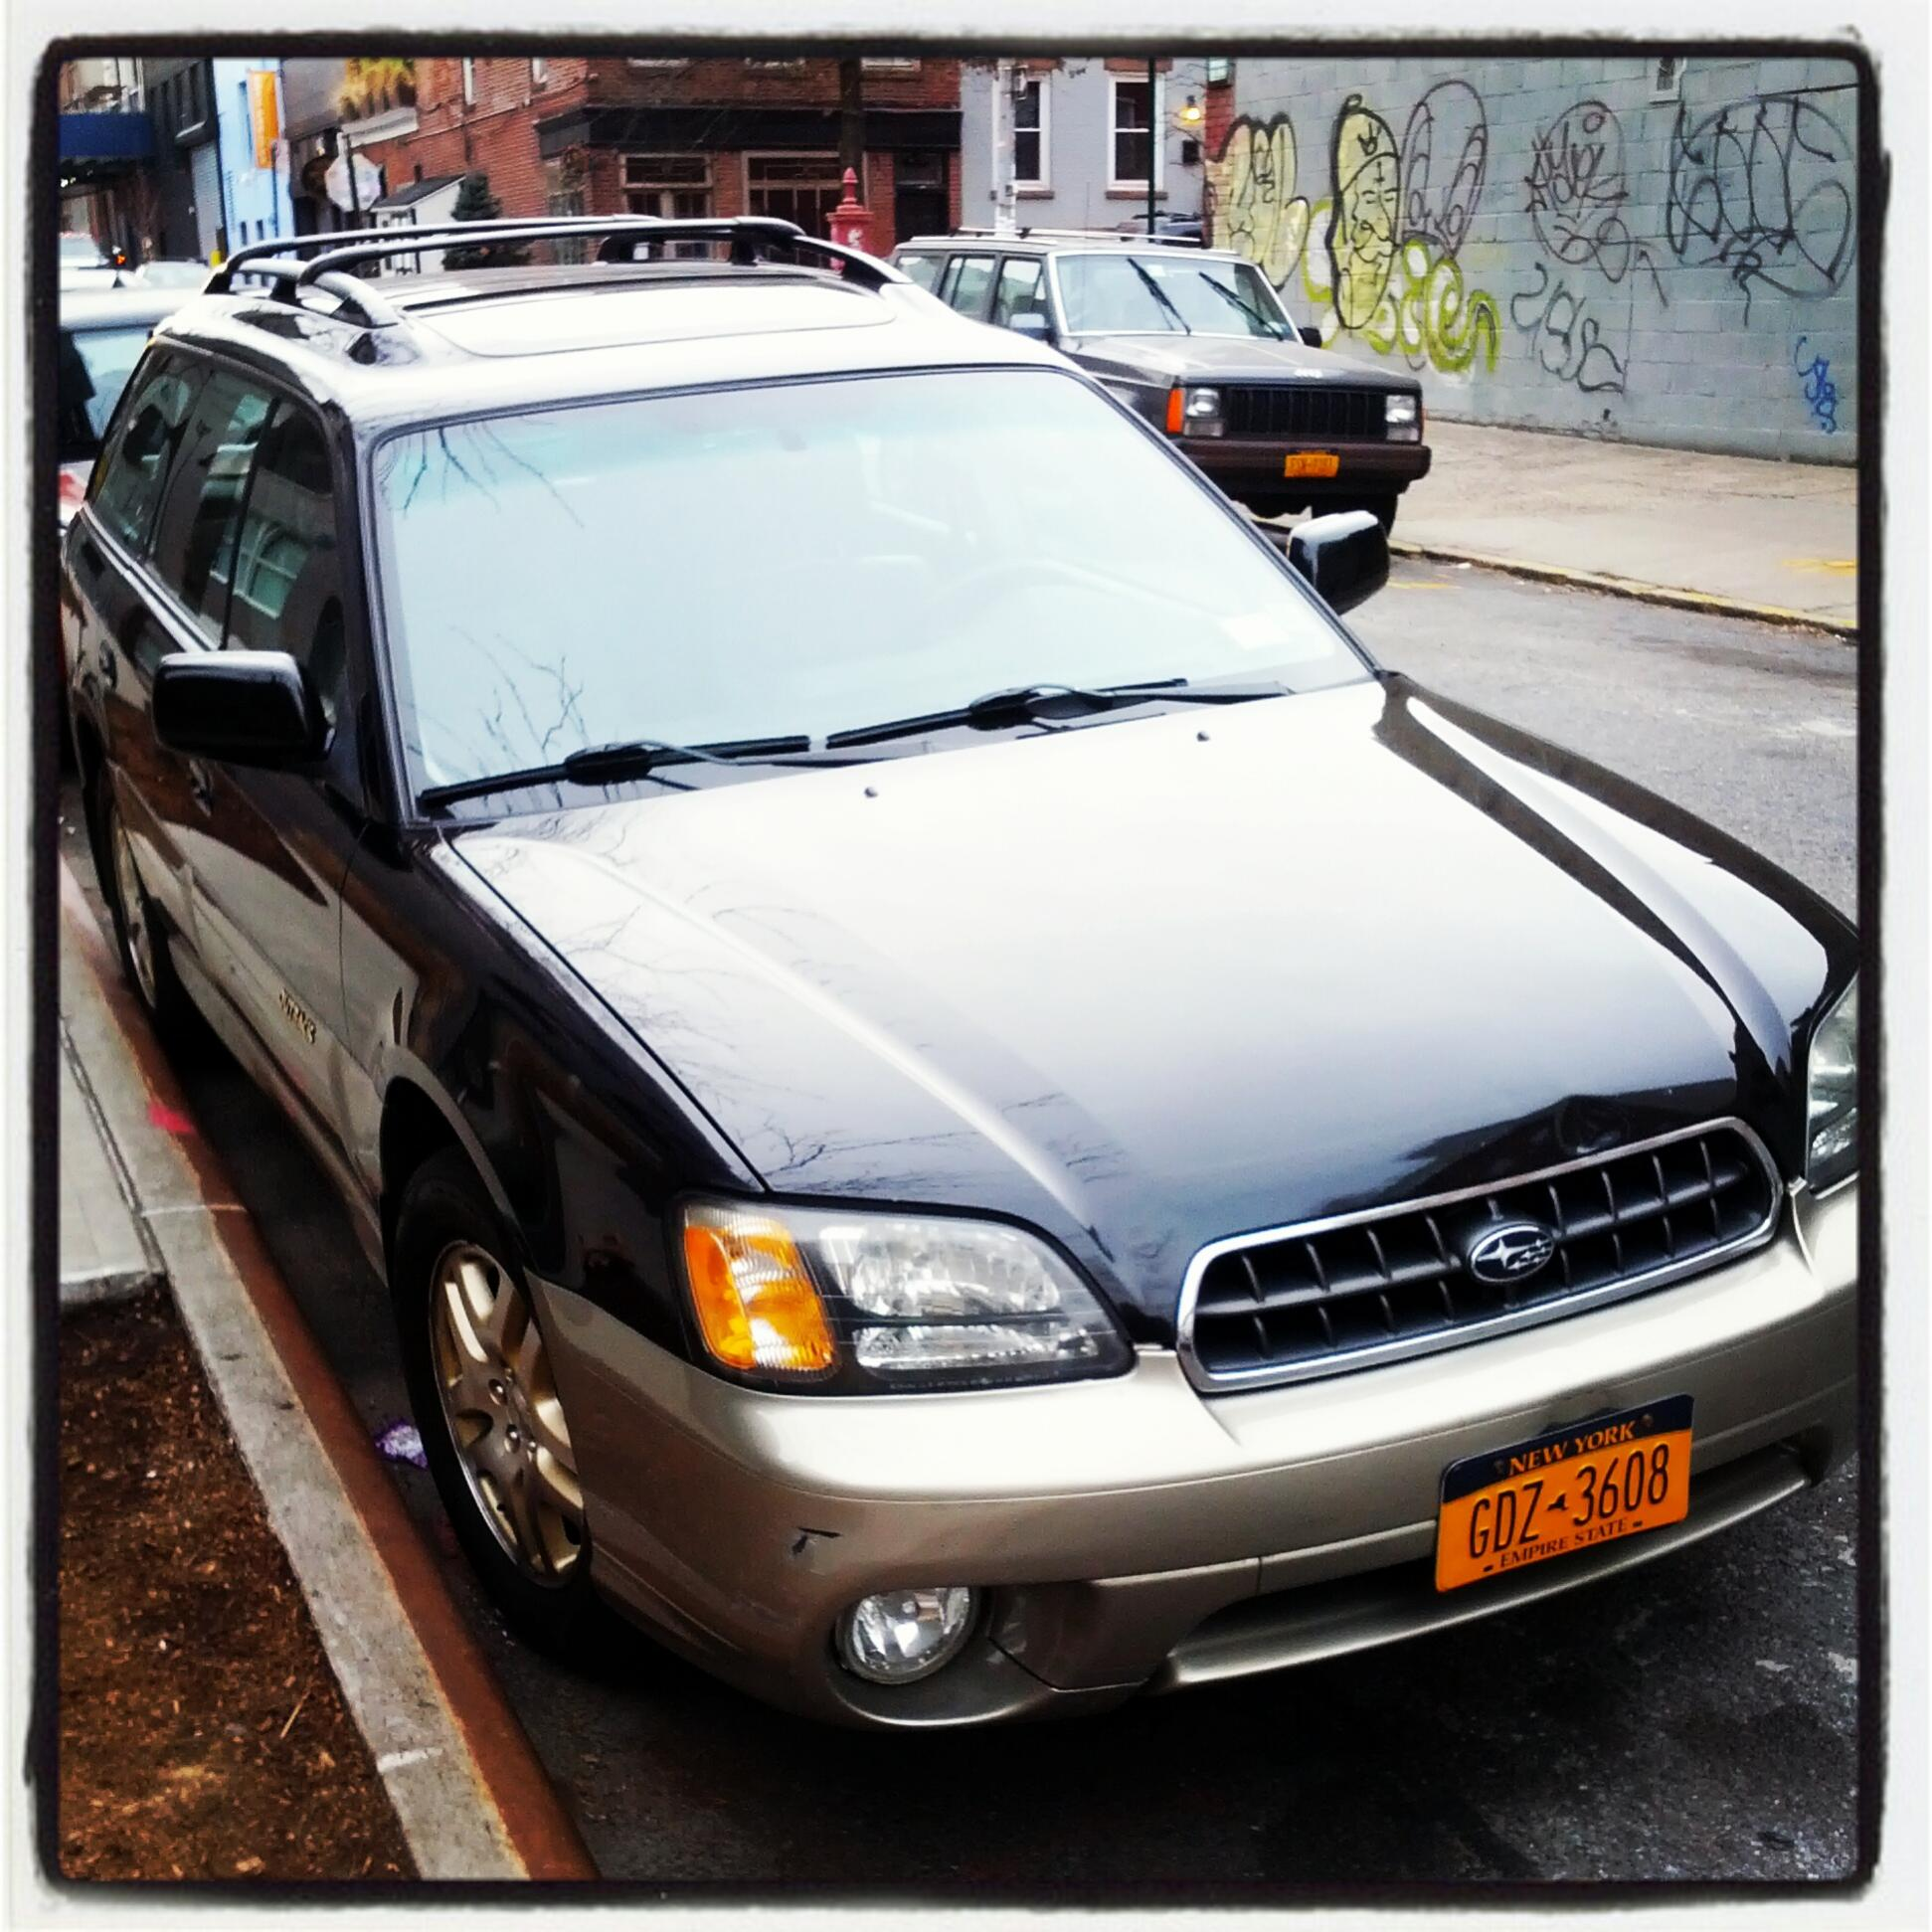 First Time Subaru Owner - 2003 Outback Limited-img_20130111_081008.jpg